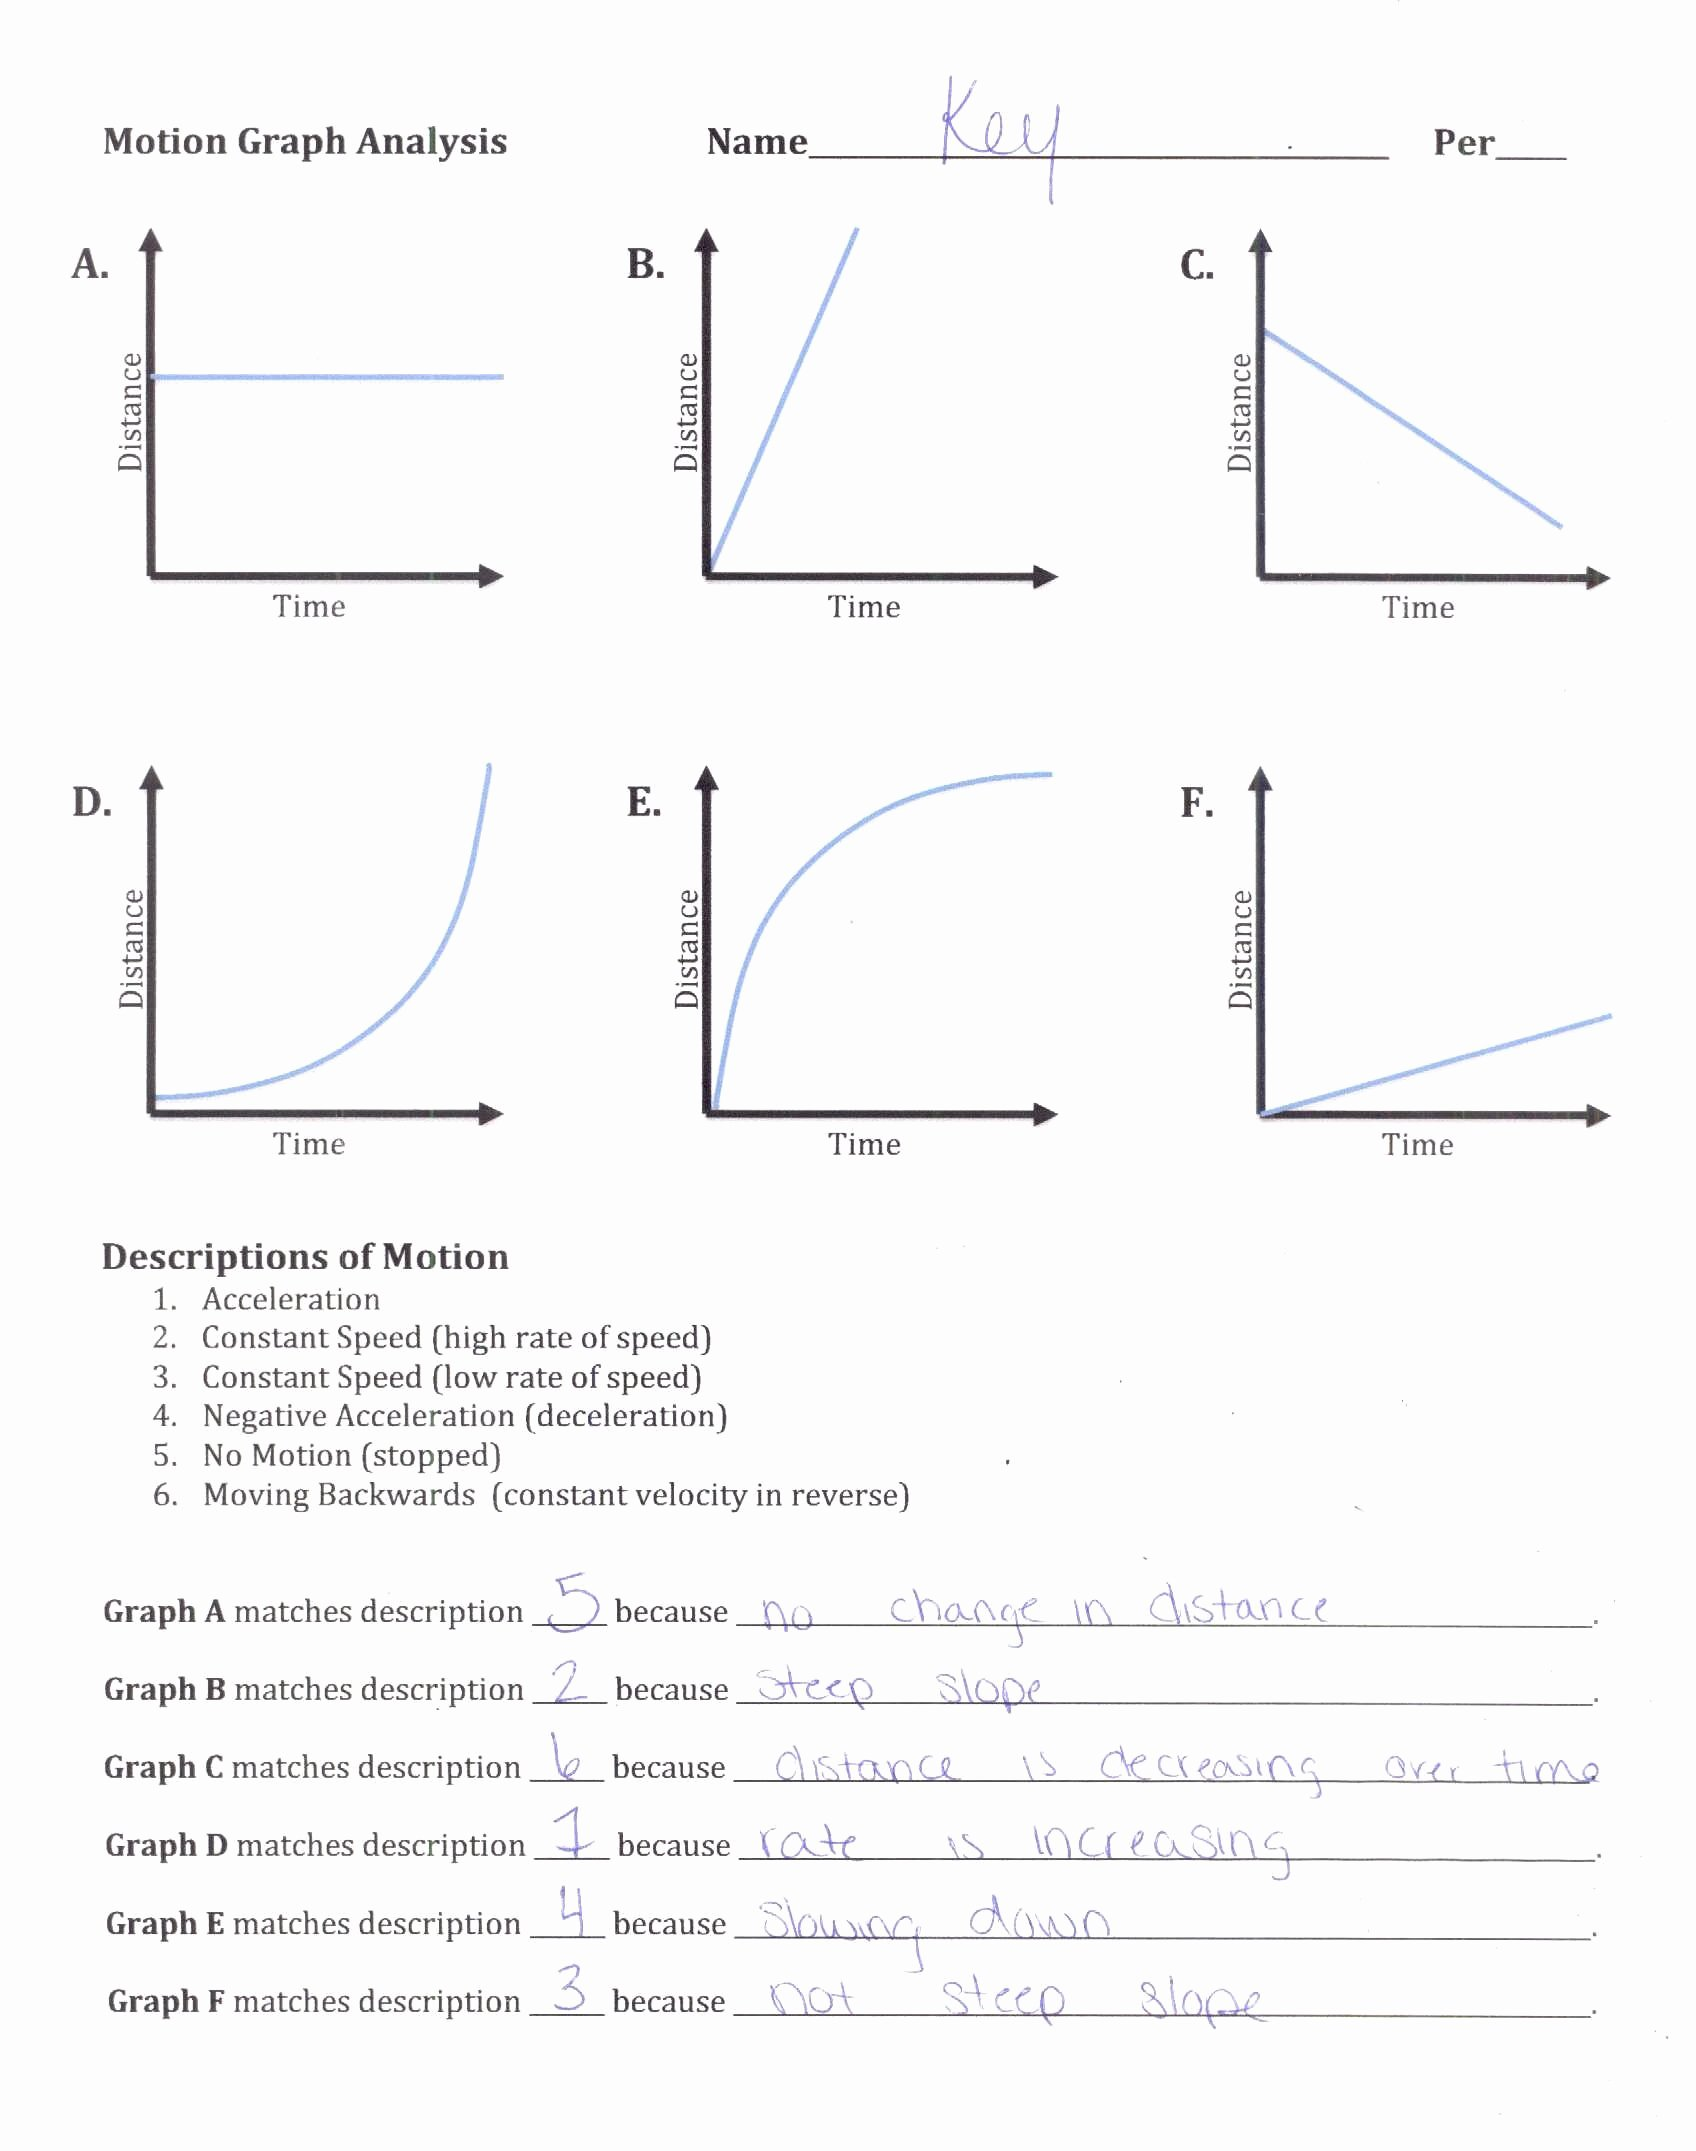 Motion Graph Analysis Worksheet Beautiful Motion Graphs Review Worksheet